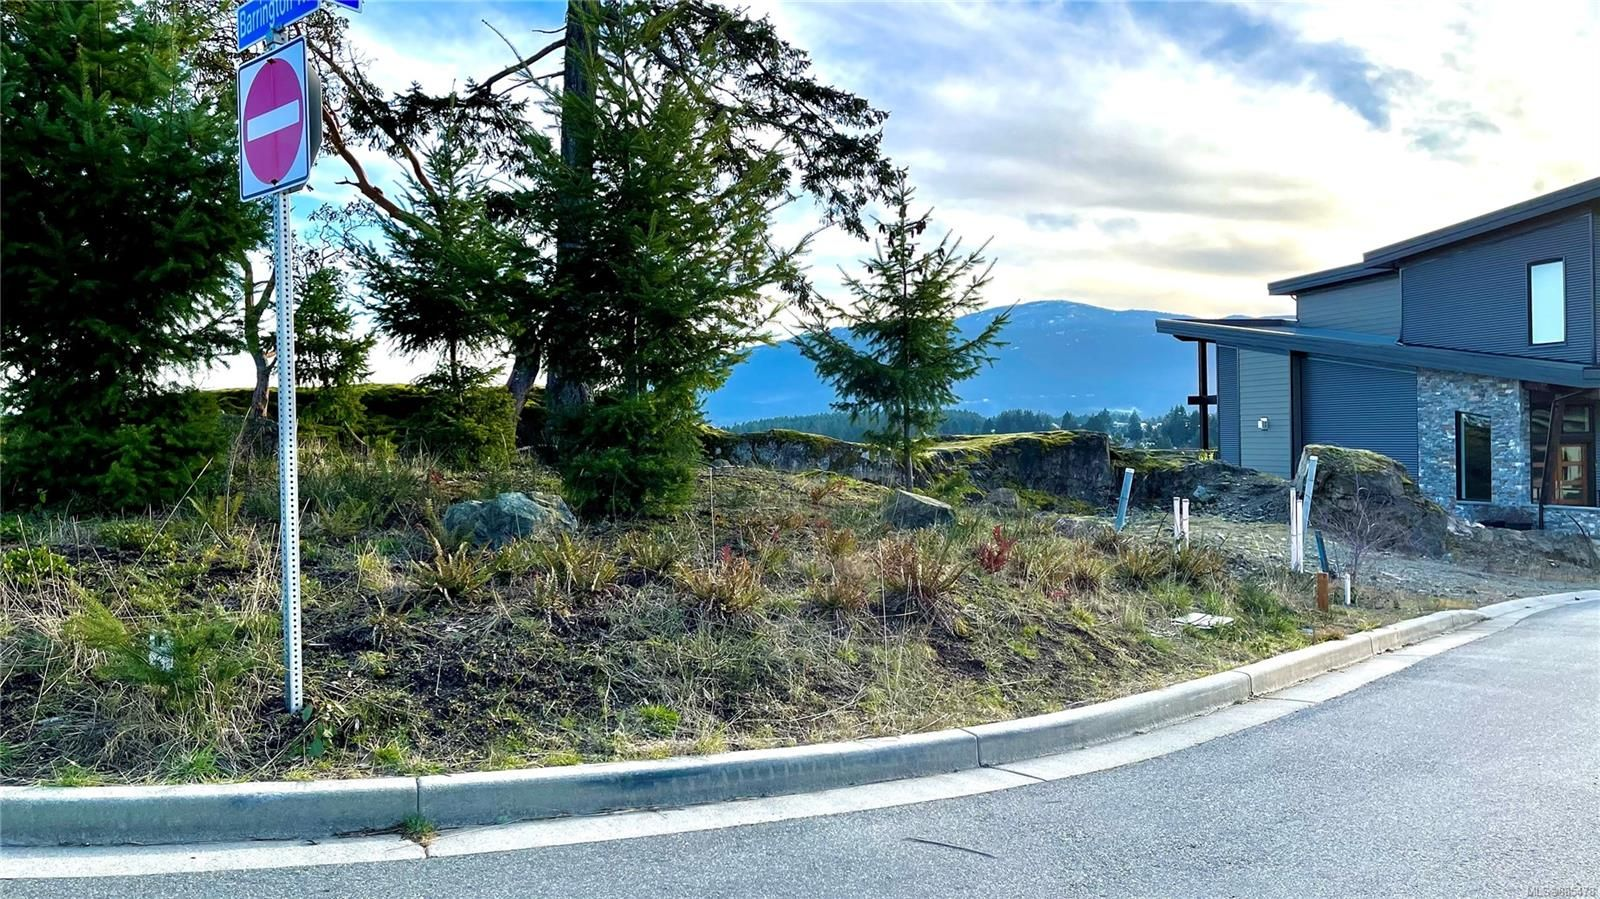 Photo 5: Photos: 103 Amphion Terr in : Na Departure Bay Land for sale (Nanaimo)  : MLS®# 885478